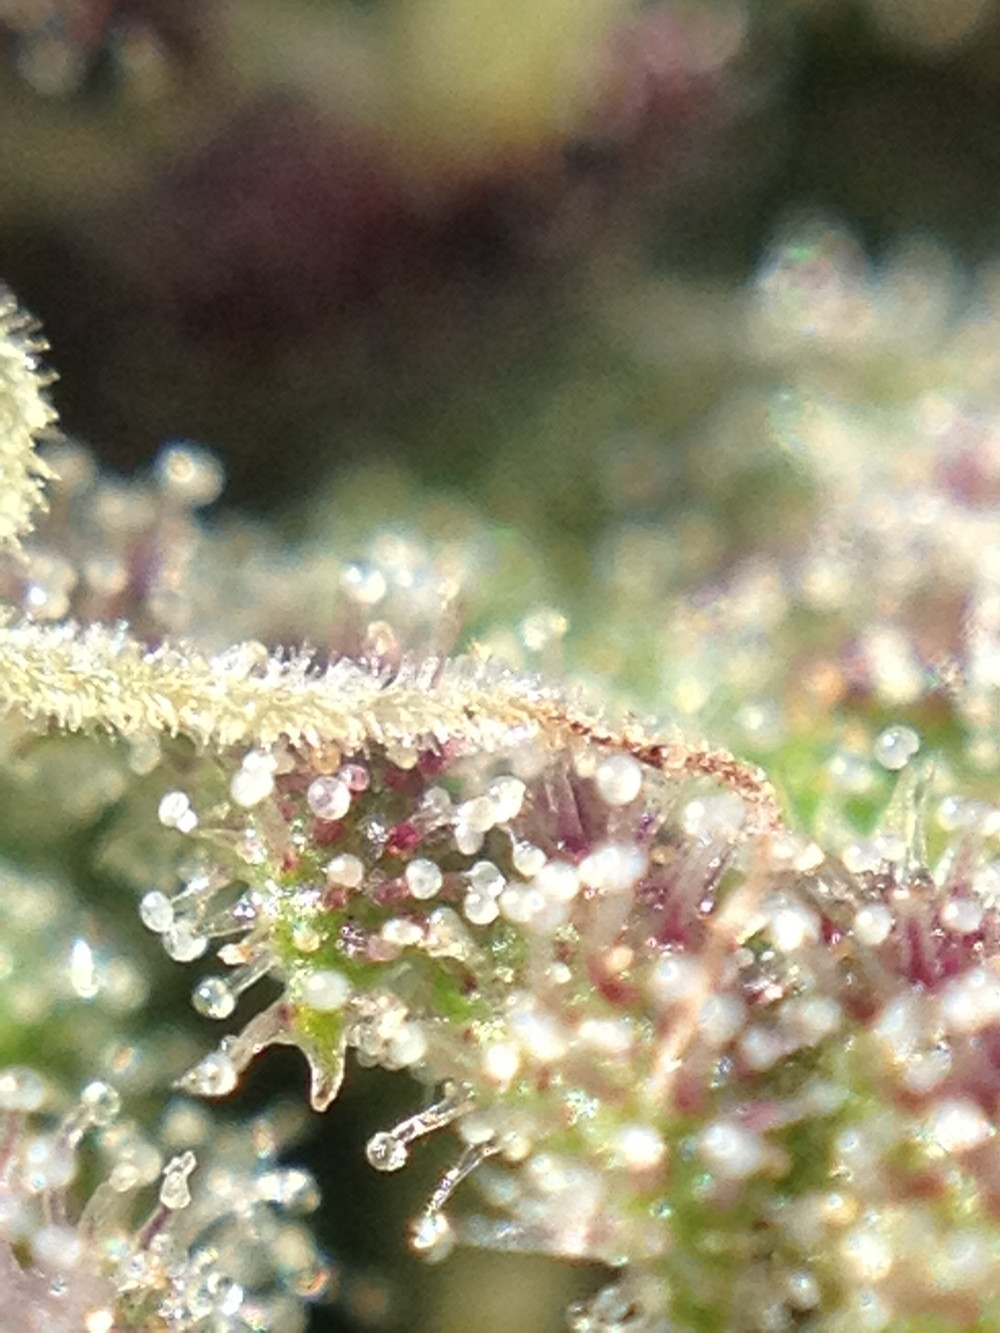 Trichomes displaying burgundy colors of maturity signal their readiness for consumption.